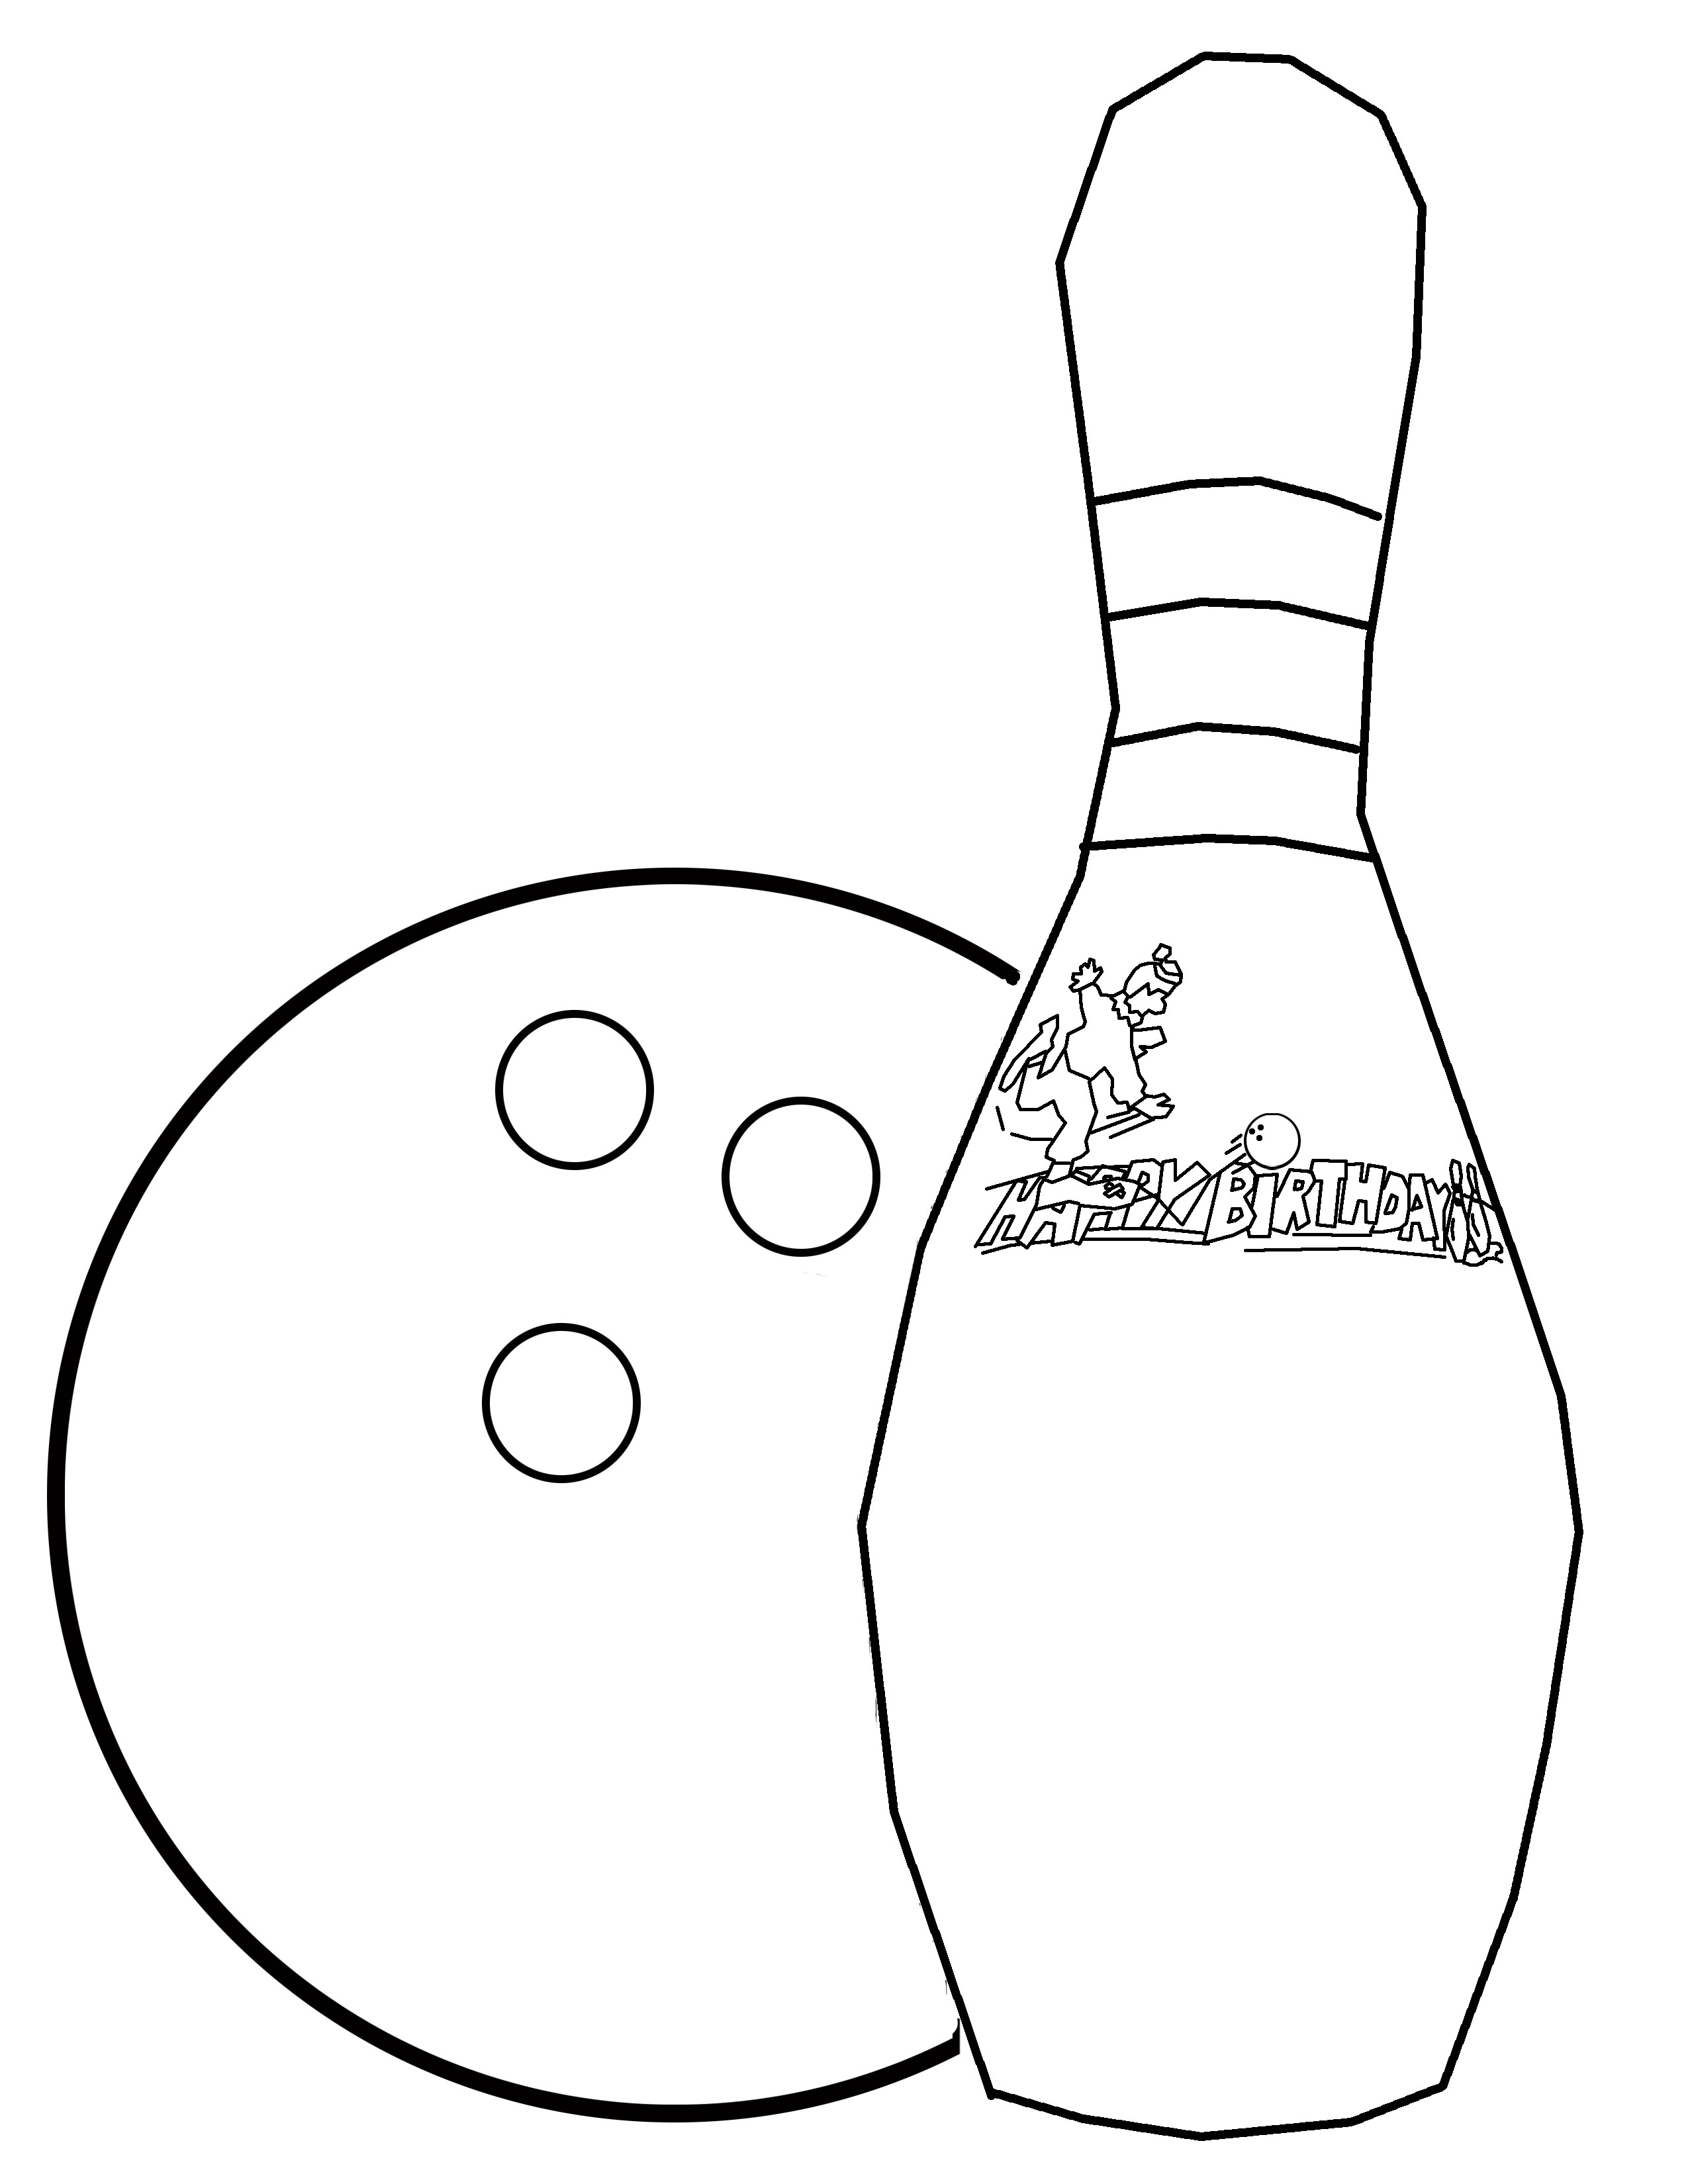 Bowling Ball Coloring Page At Getcolorings